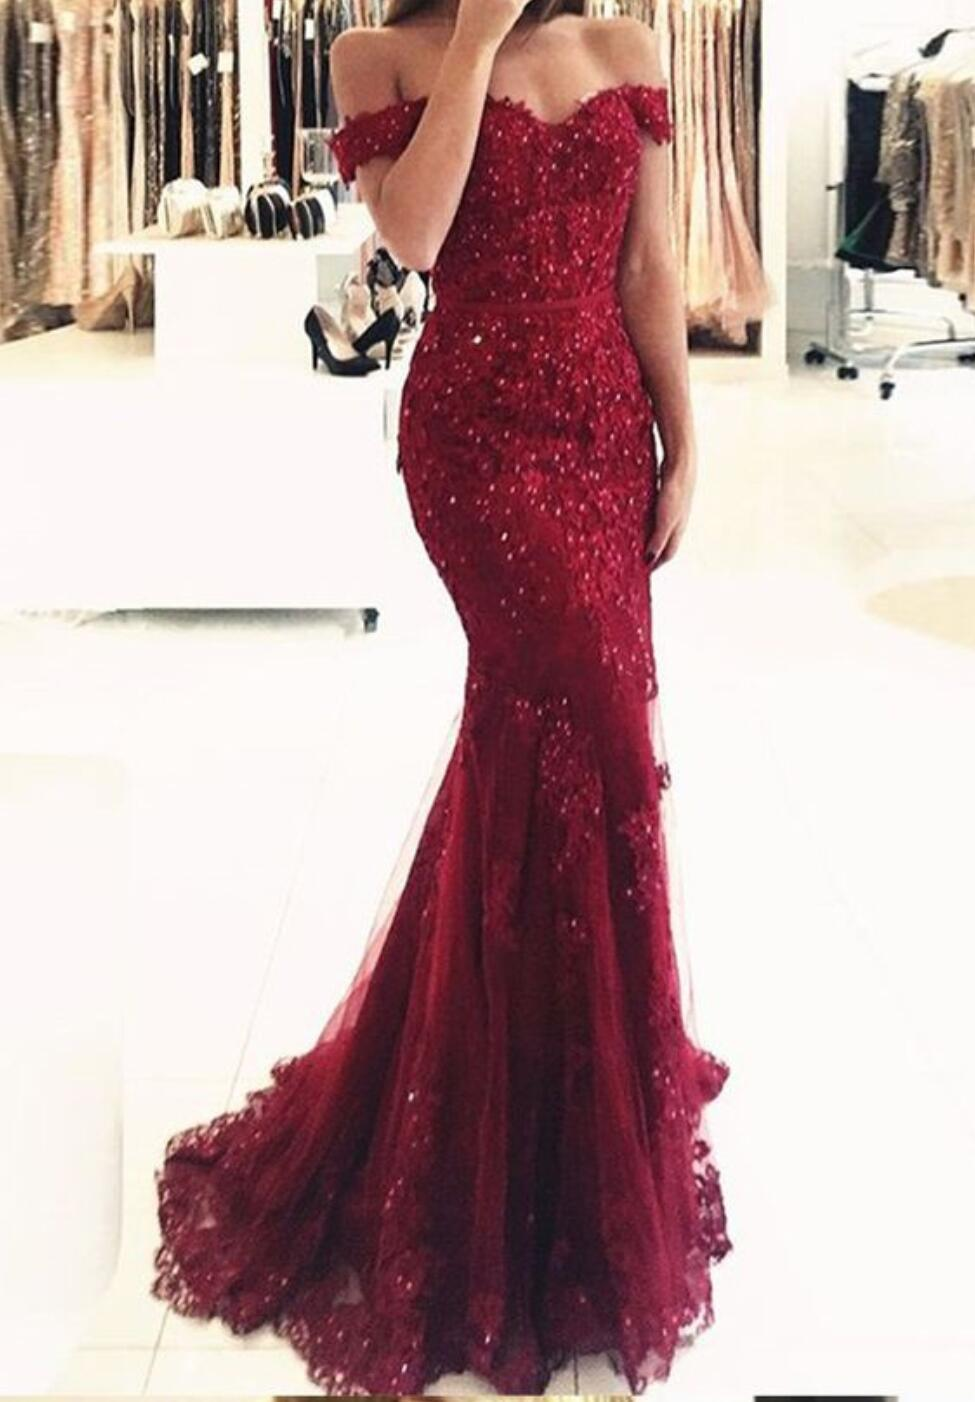 f13a256dd5d7 Off Shoulder Dark Red Lace Beaded Evening Mermaid Prom Dresses